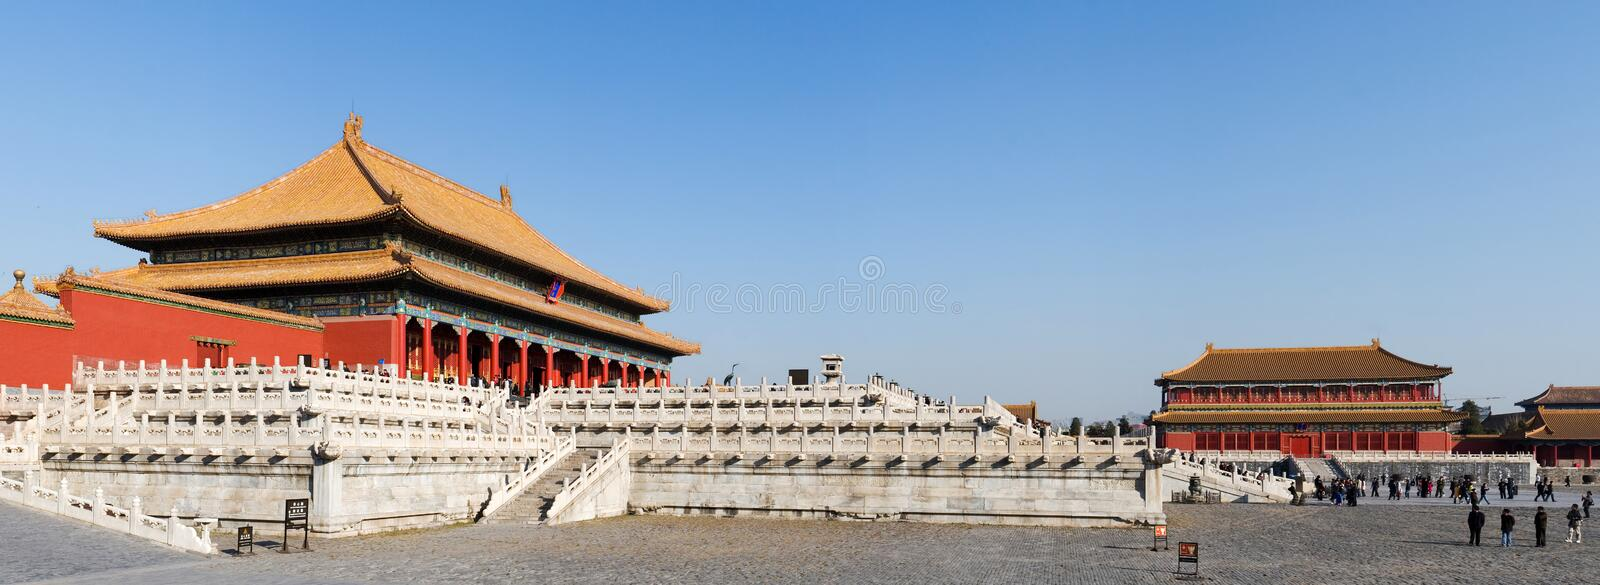 Download Forbidden City (Palace Museum) Stock Photo - Image: 9424710